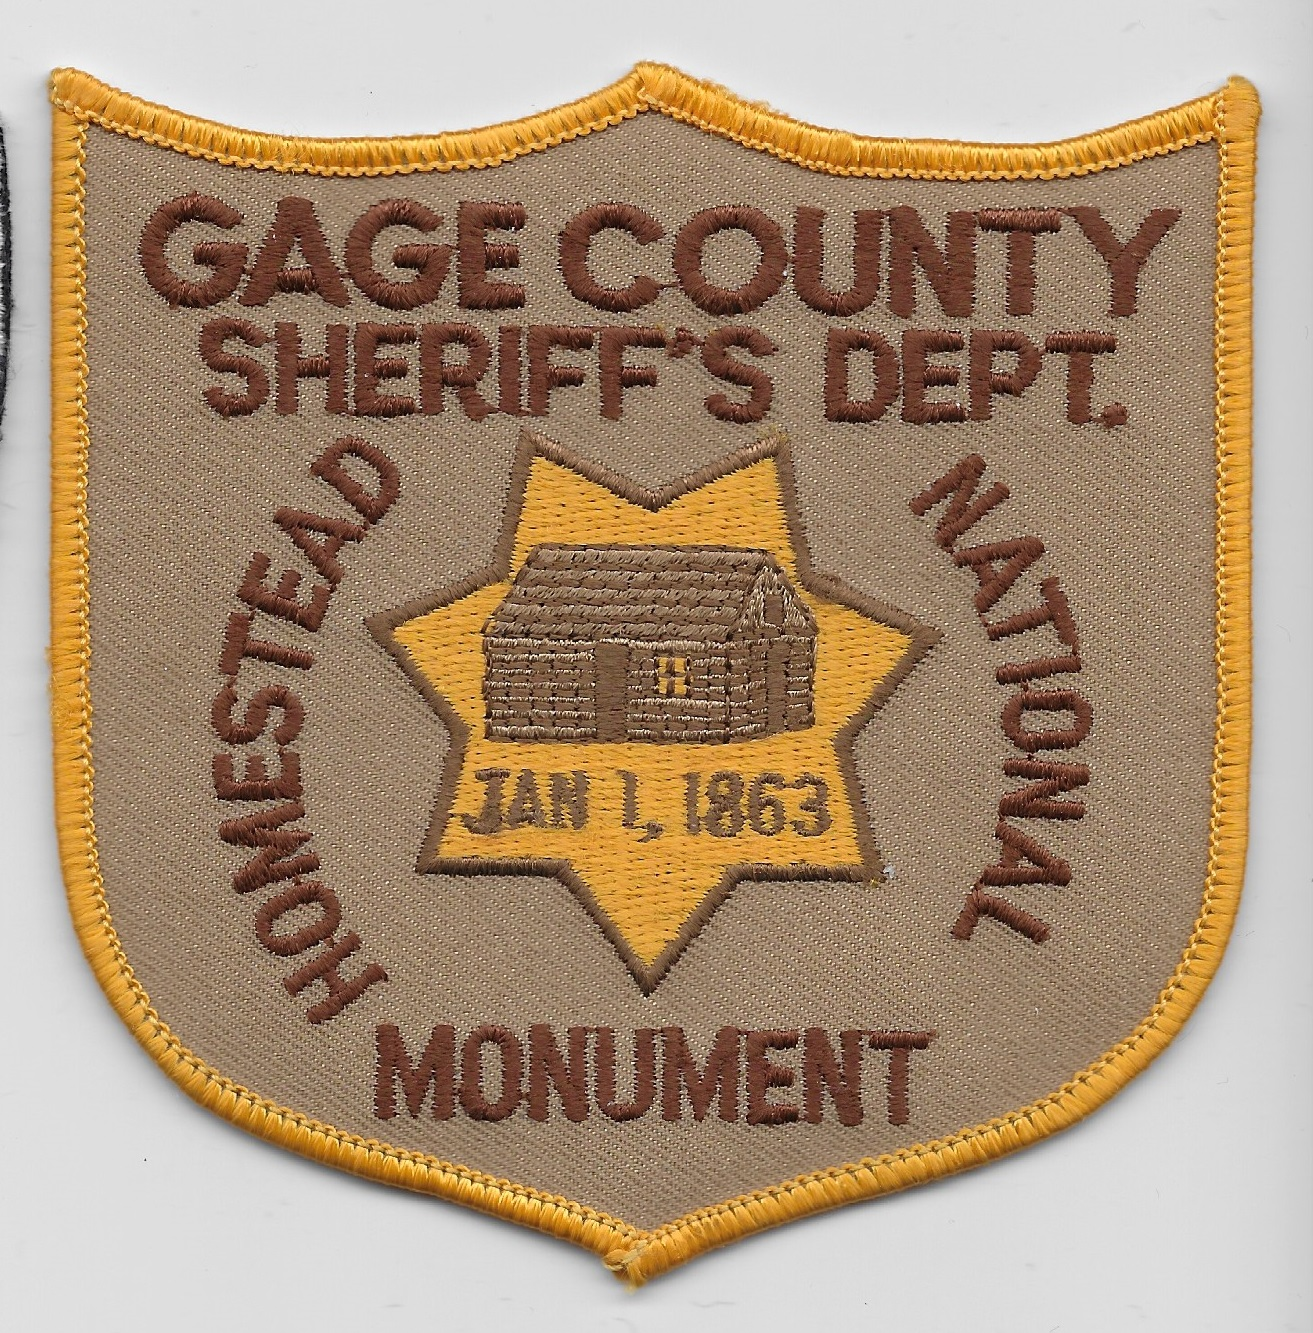 Gage County Sheriff NE